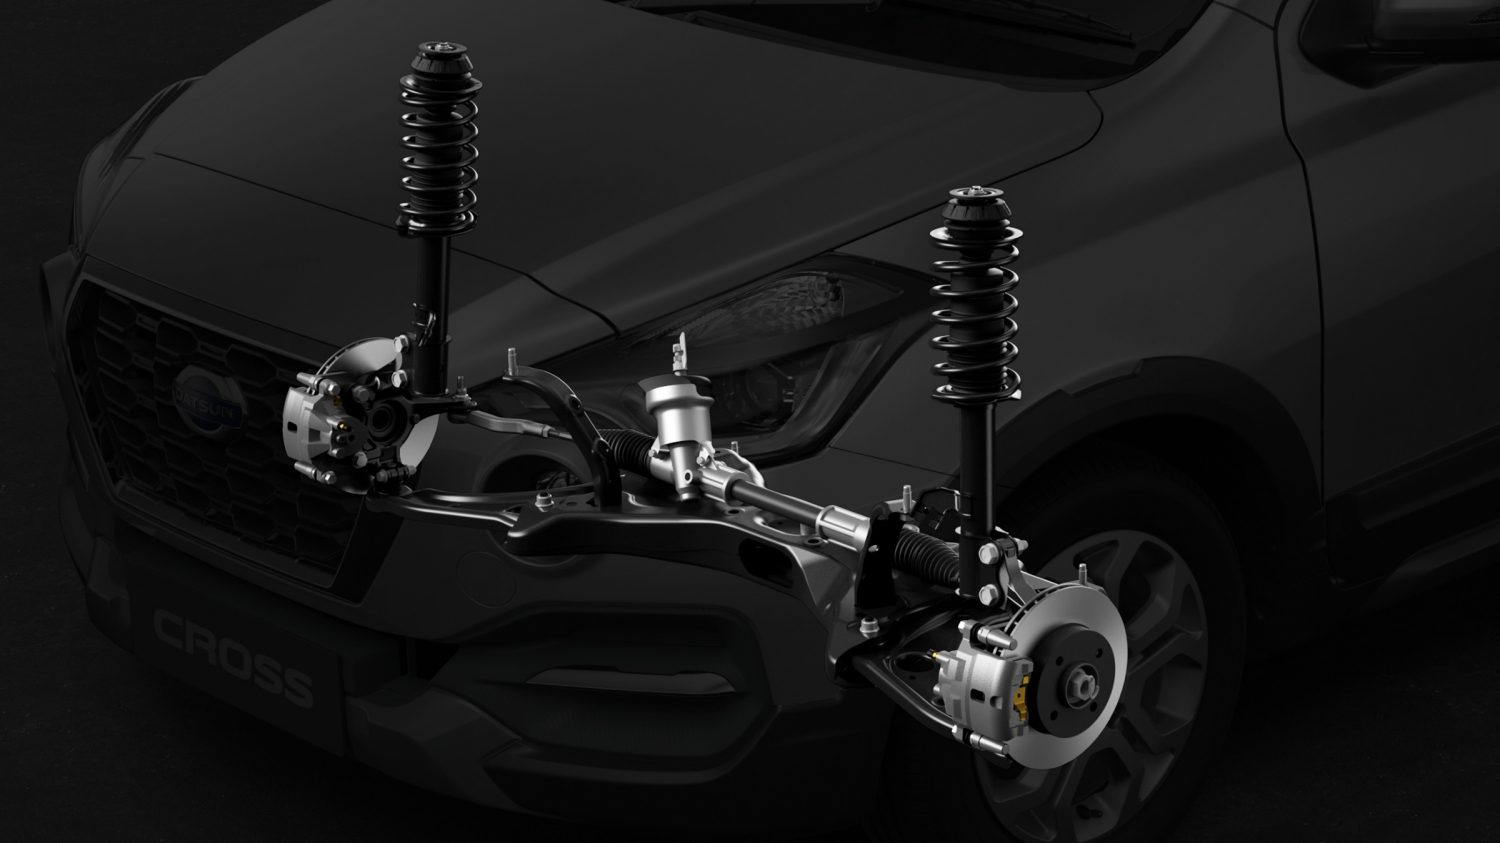 Datsun Cross graphic of suspension system